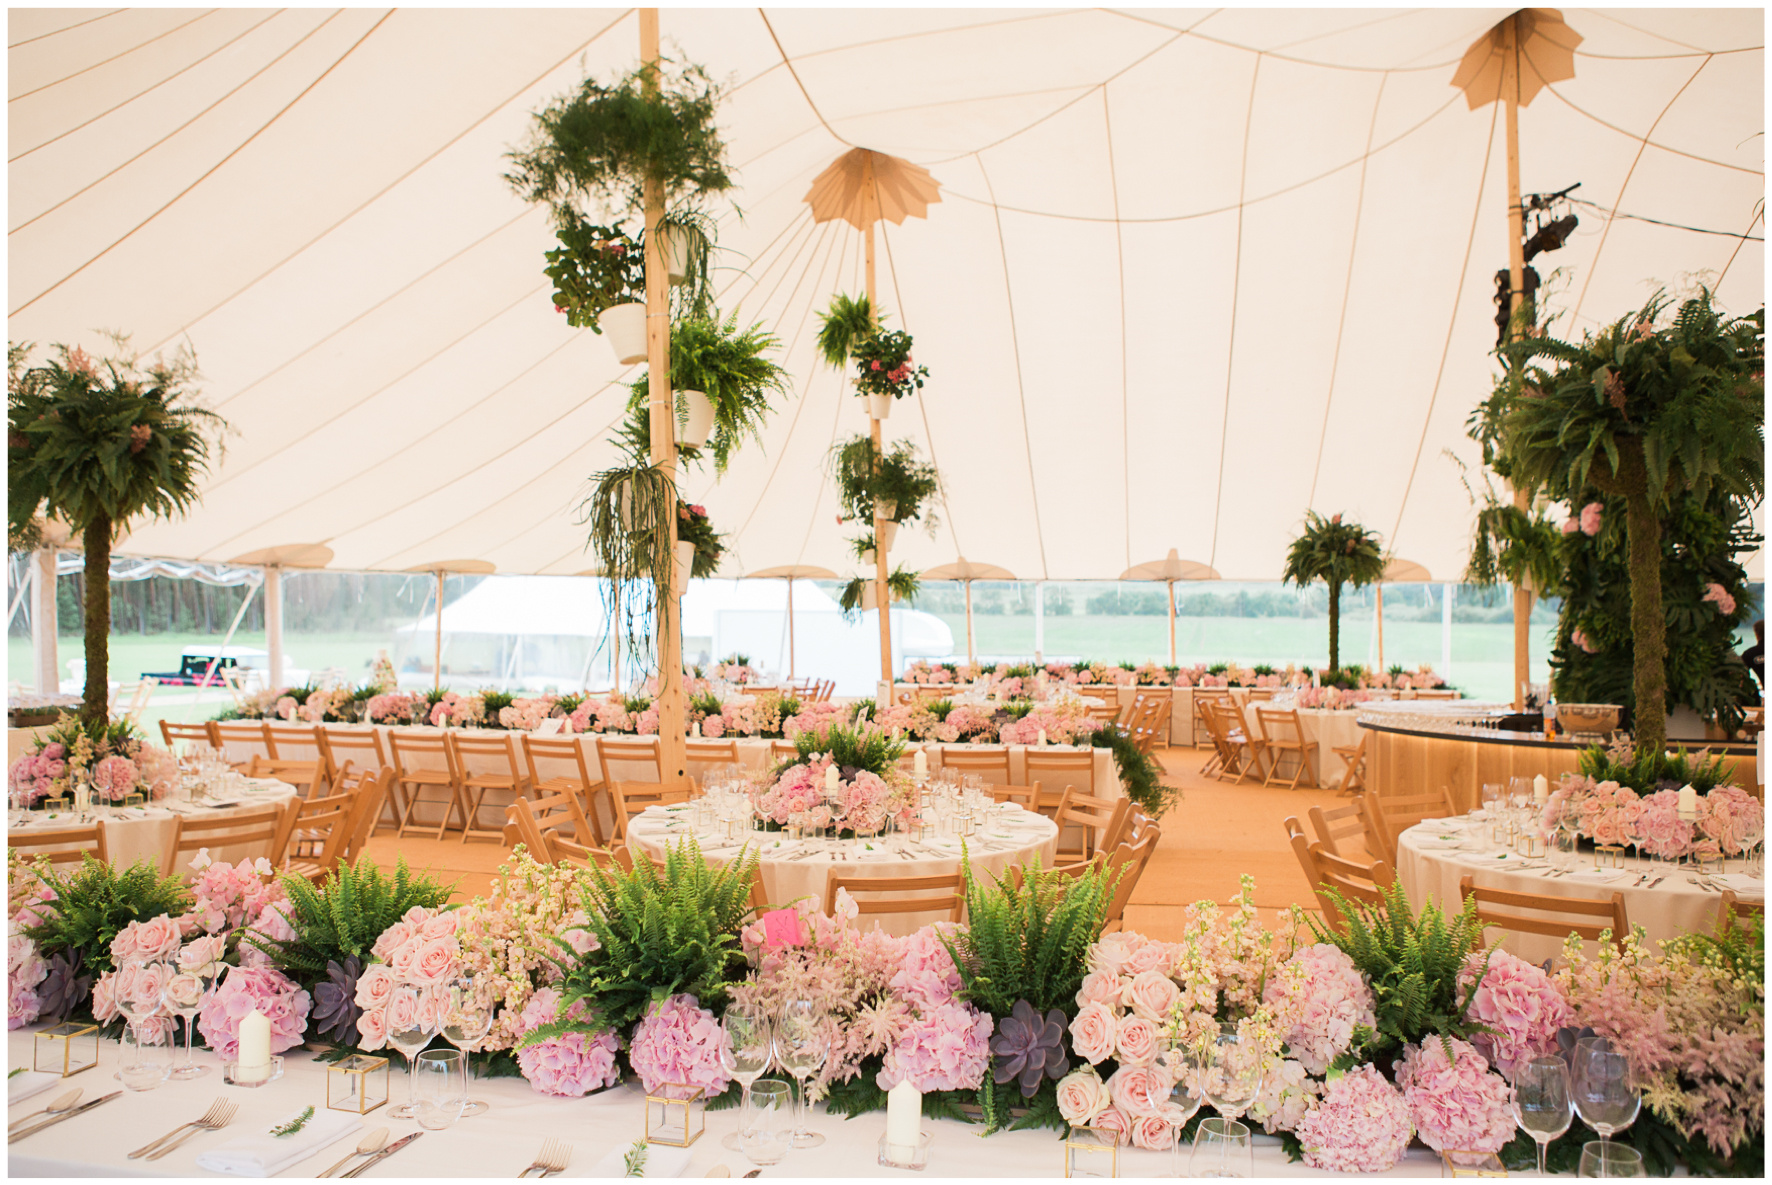 glamping wedding, Lucy Davenport Photography, home wedding, Sperry tent, PapaKata, ferns, greenery, pinks, florals,